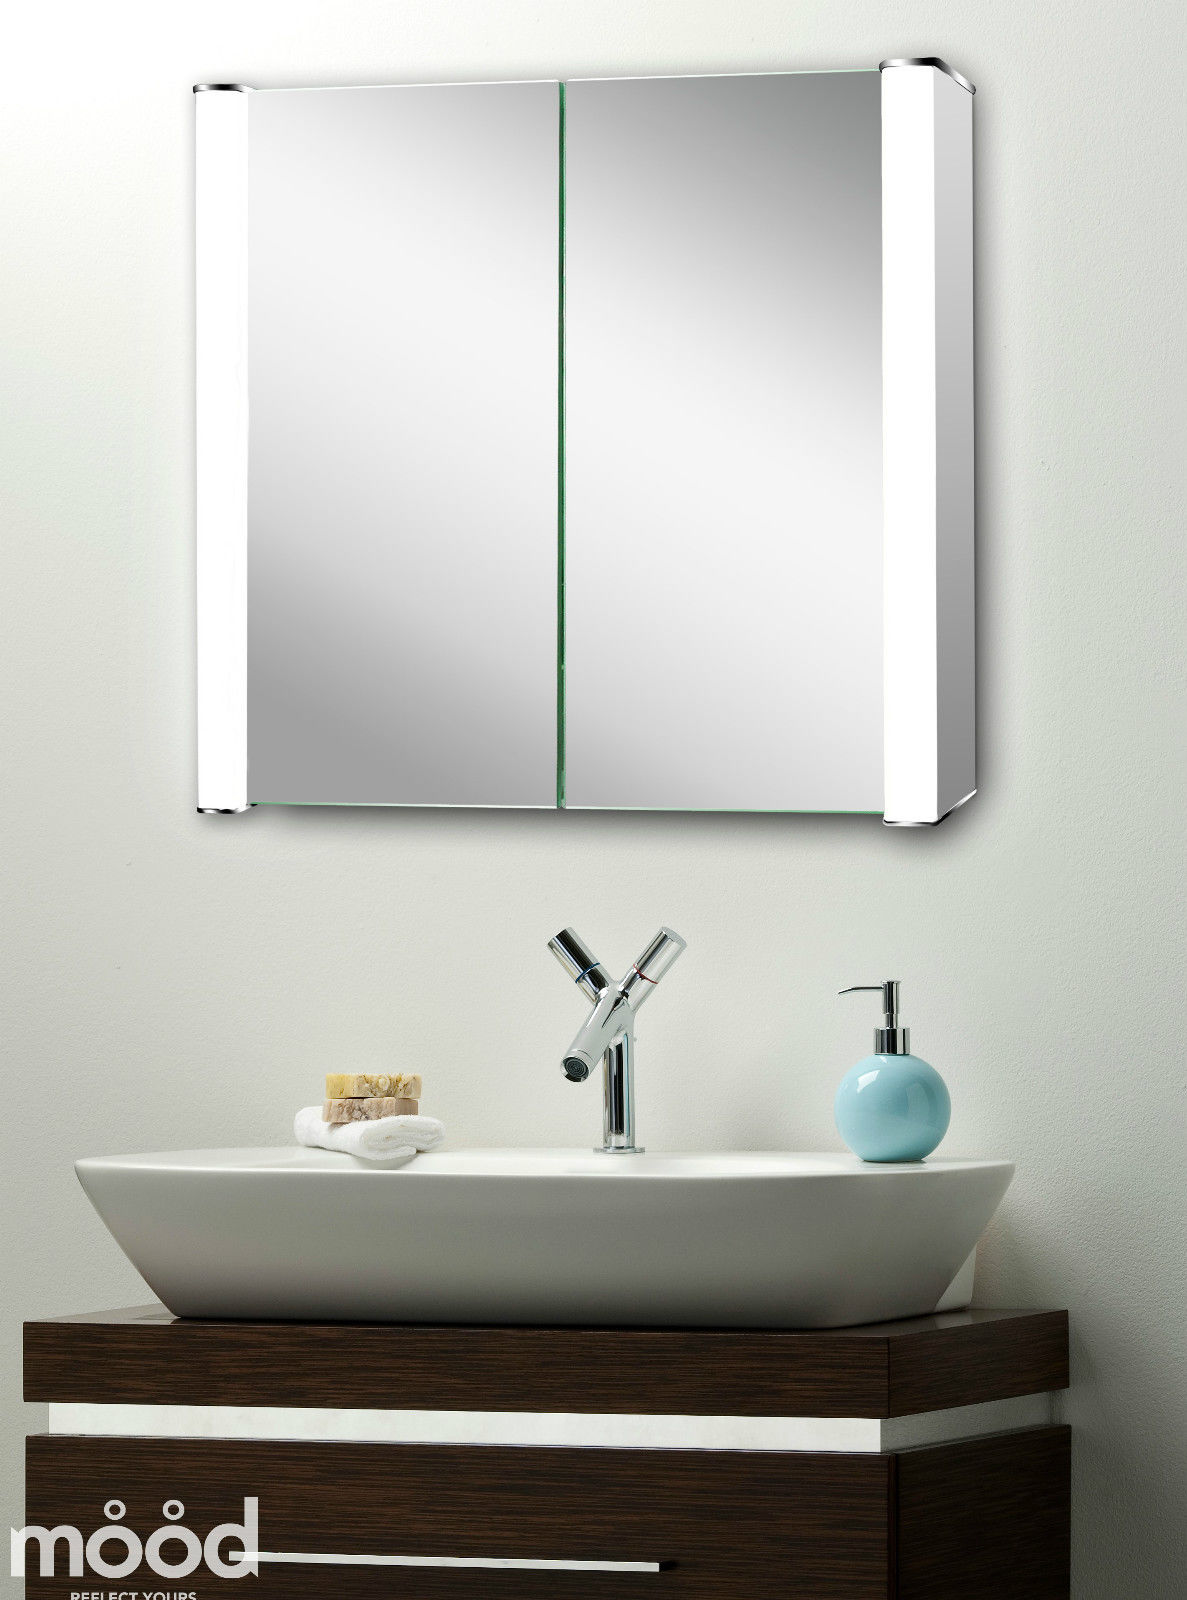 led illuminated bathroom mirror cabinet 60x65 demister shaver